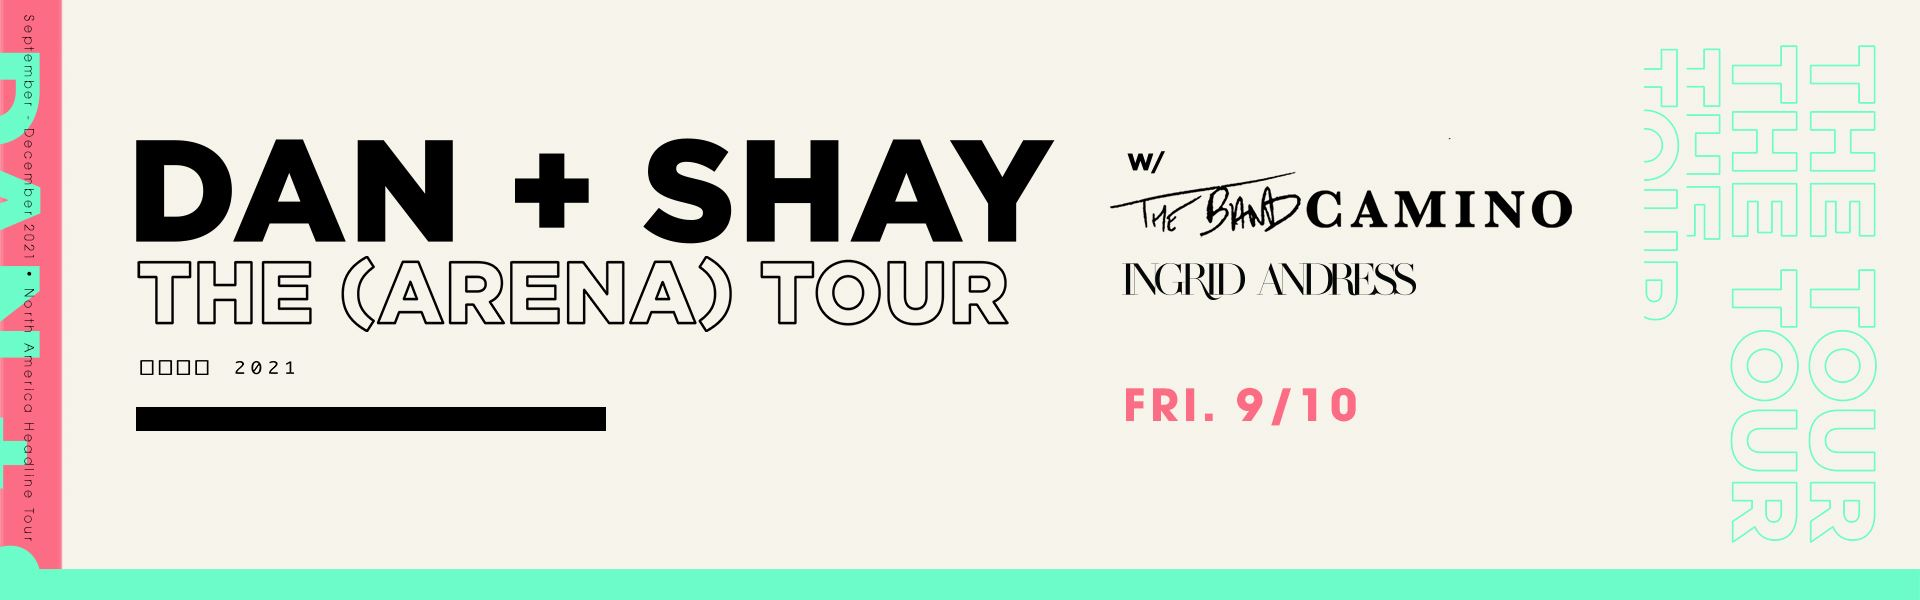 Dan + Shay With The Band Camino & Ingrid Andress (NEW DATE) 9/10/21